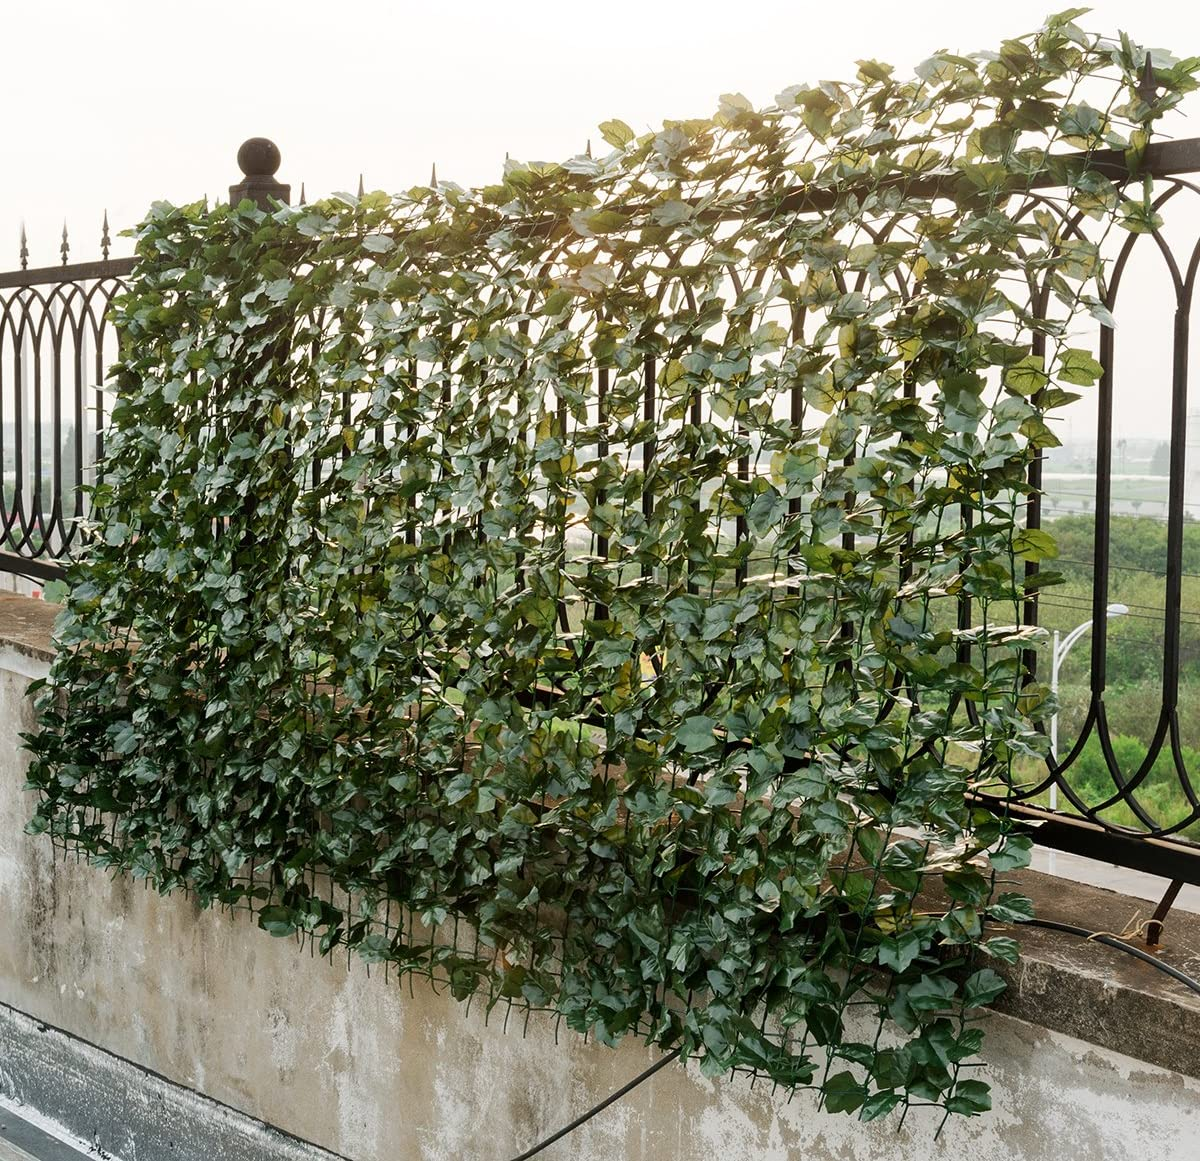 Giantex Artificial Hedges Faux Ivy Leaves Fence Decorative Trellis Privacy  Fence Screen Mesh 20